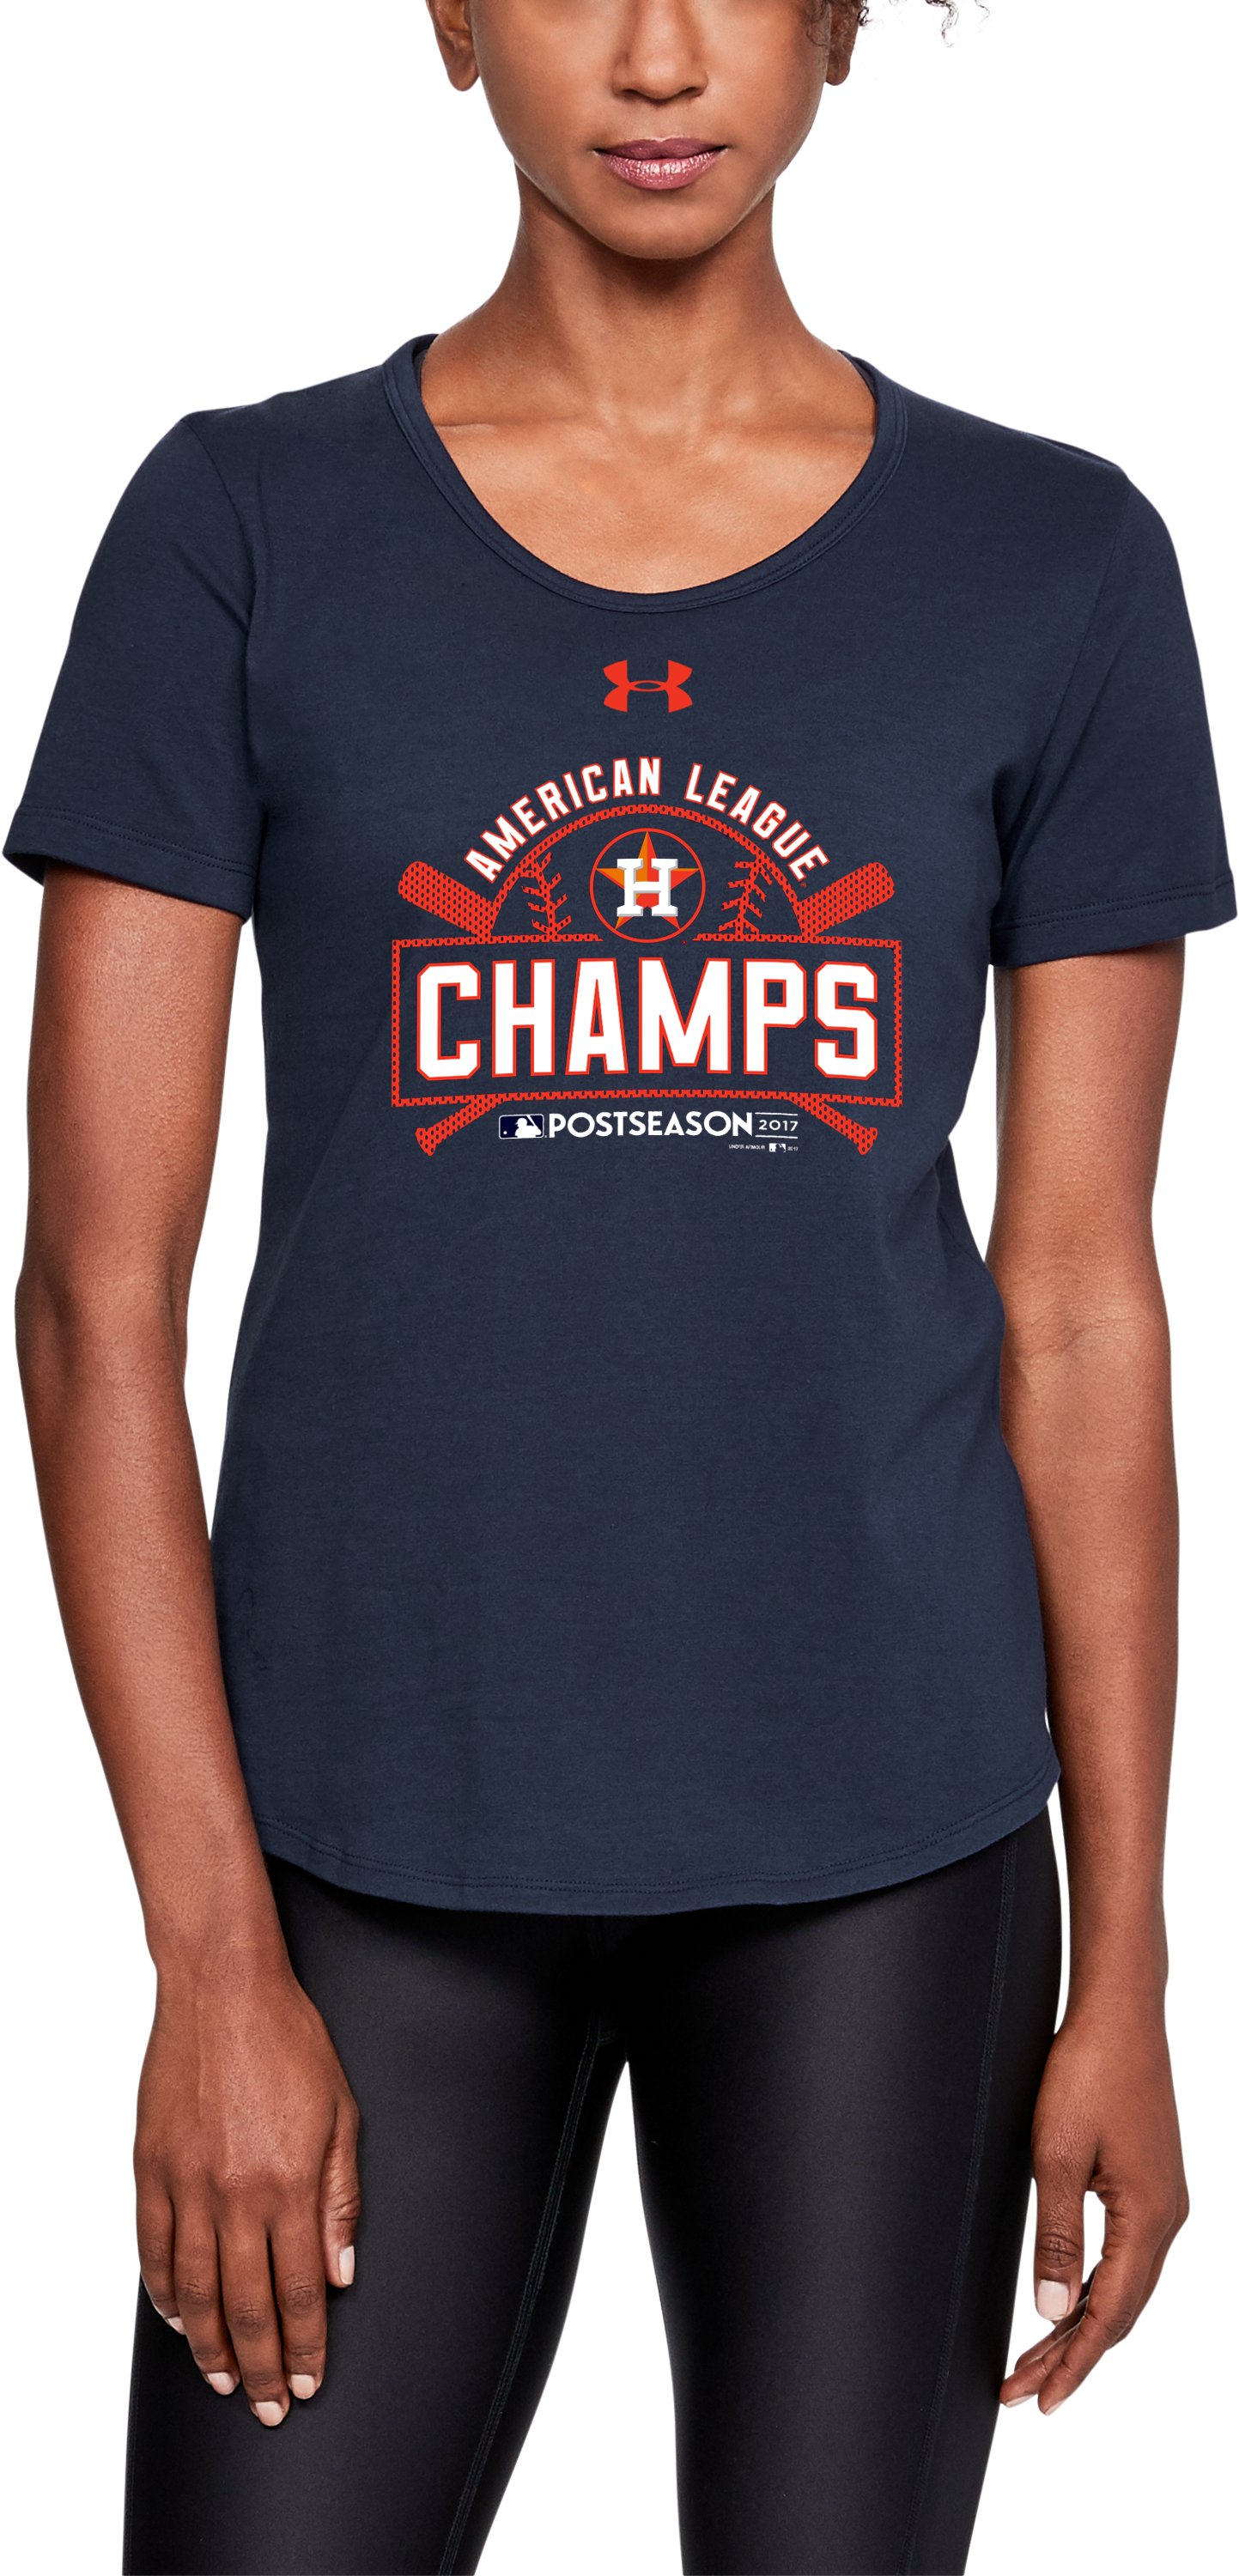 Women's Houston Astros League Champs T-Shirt, Midnight Navy,